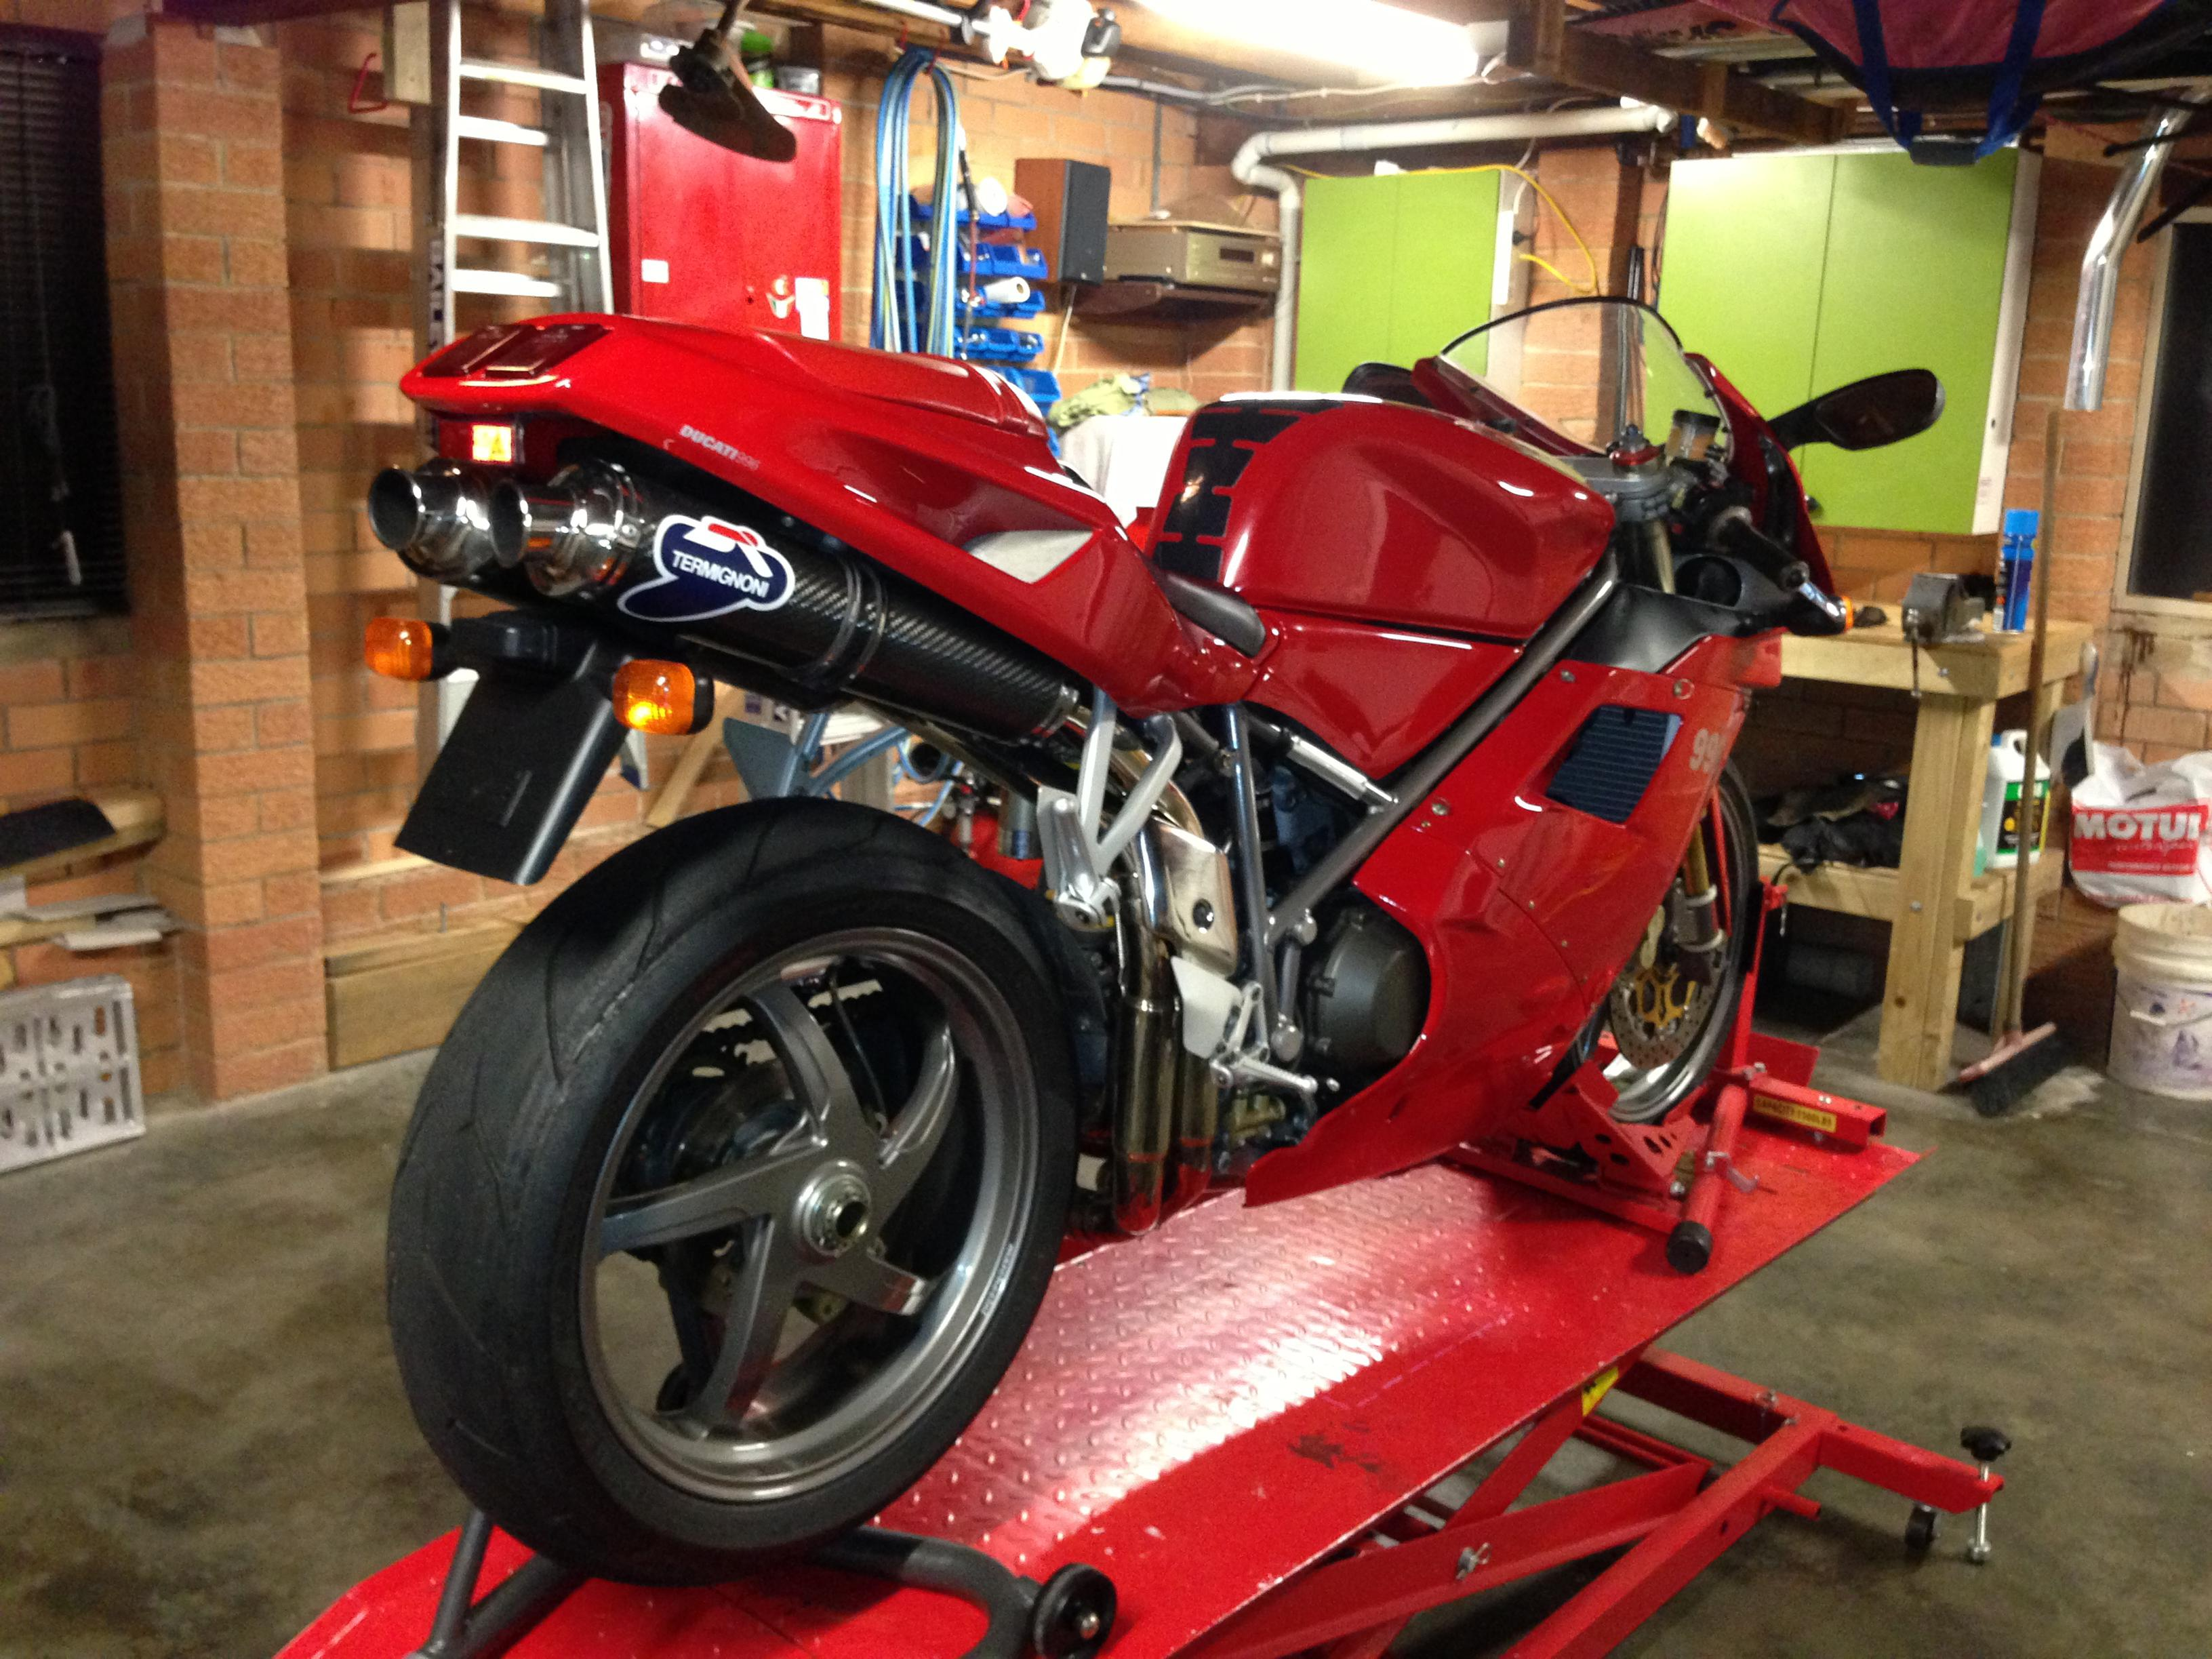 996 street bits for sale - ducati forum | the home for ducati